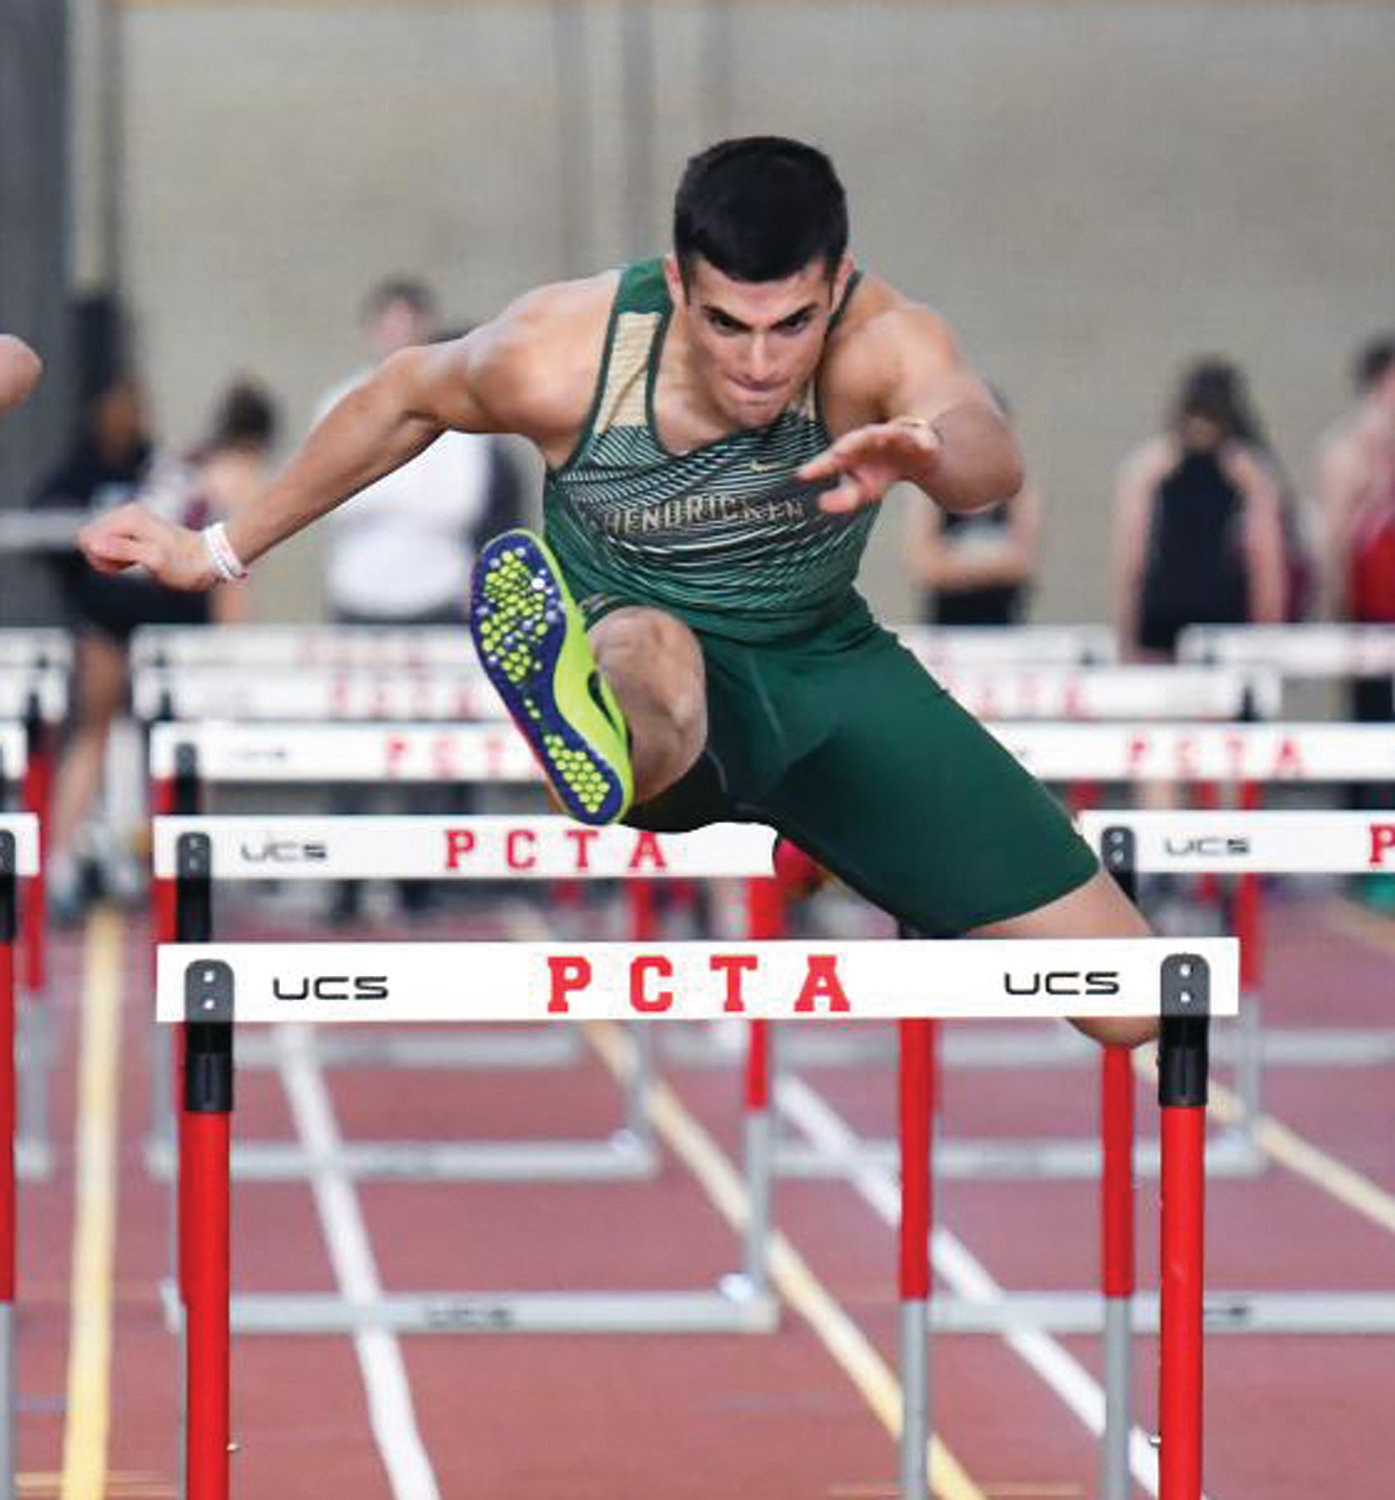 LEAPS AND BOUNDS: Bishop Hendricken's Sean Fagan competes in the hurdles.